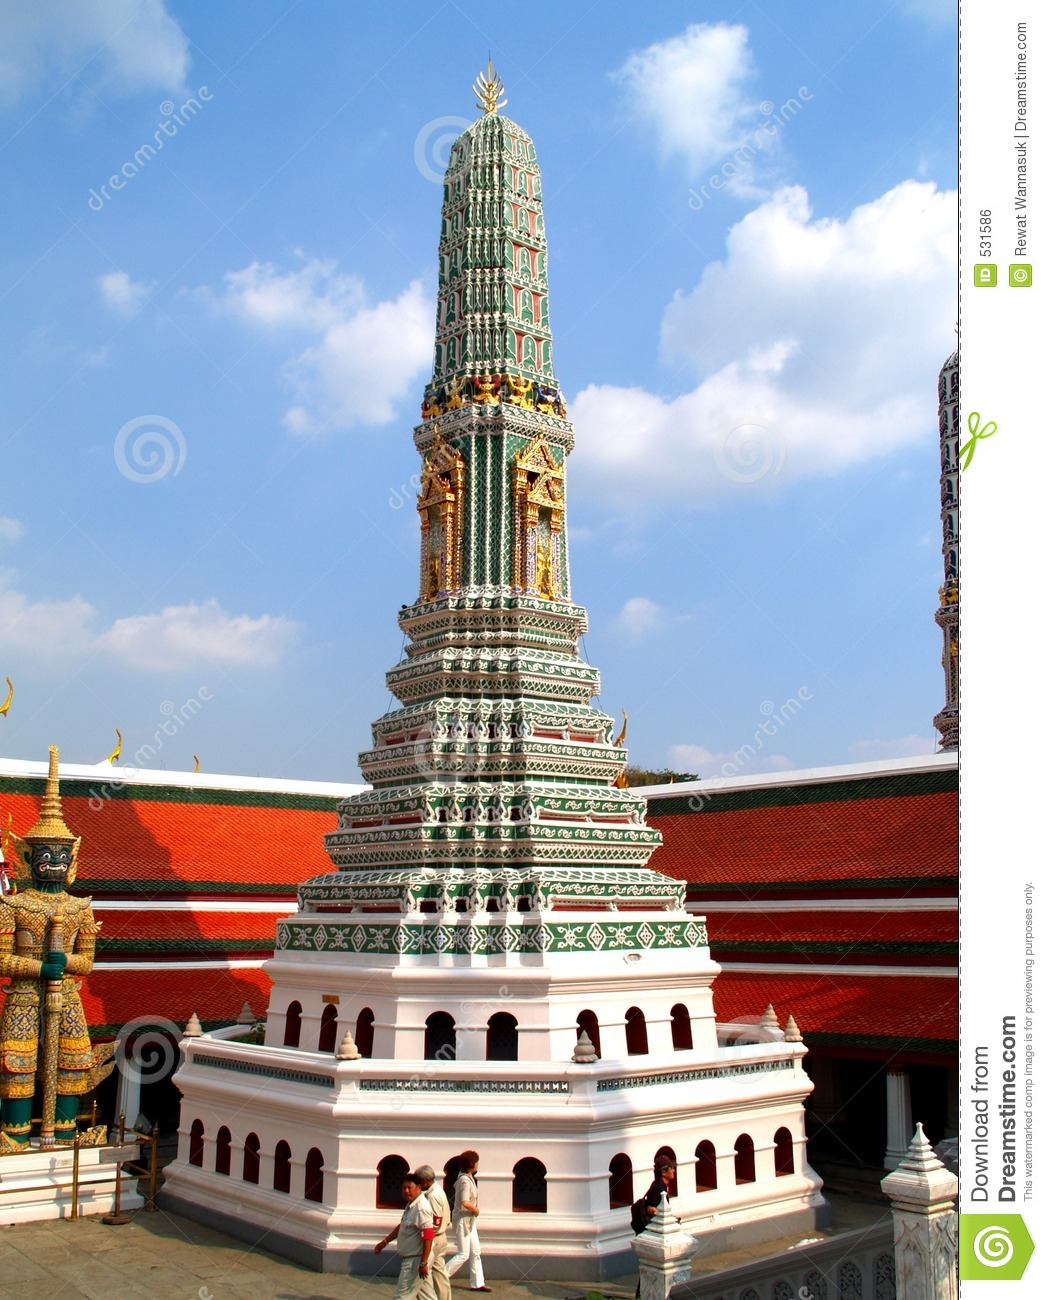 Thailand architecture style 05 royalty free stock image for Wat architecture